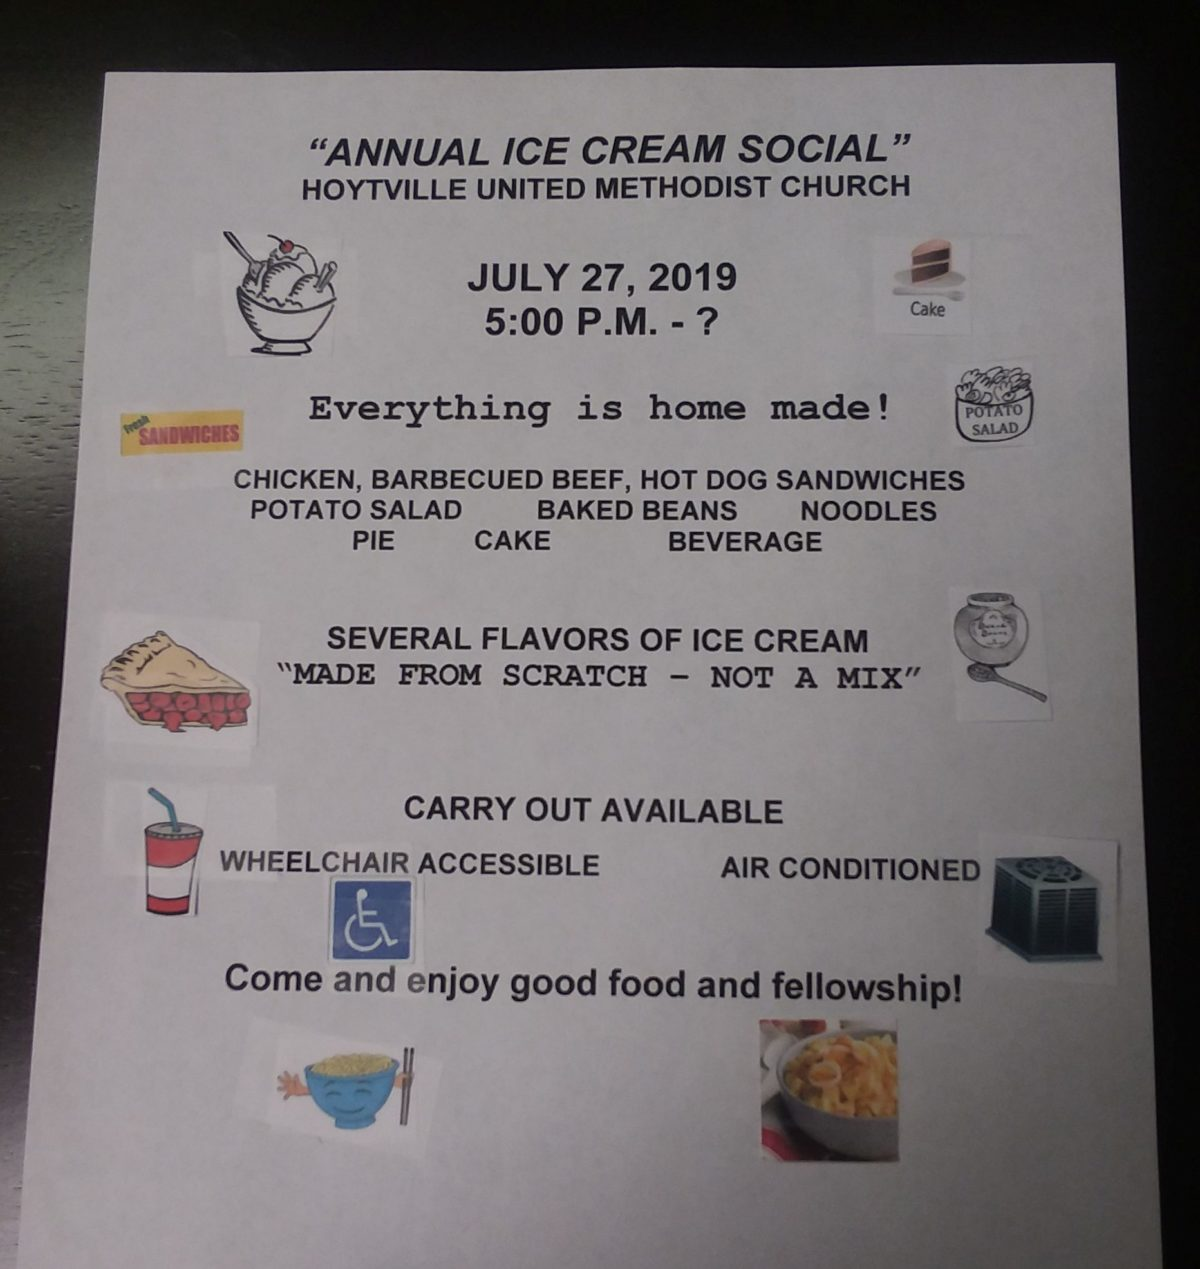 TOMORROW: Hoytville UMC Plans Ice Cream Social